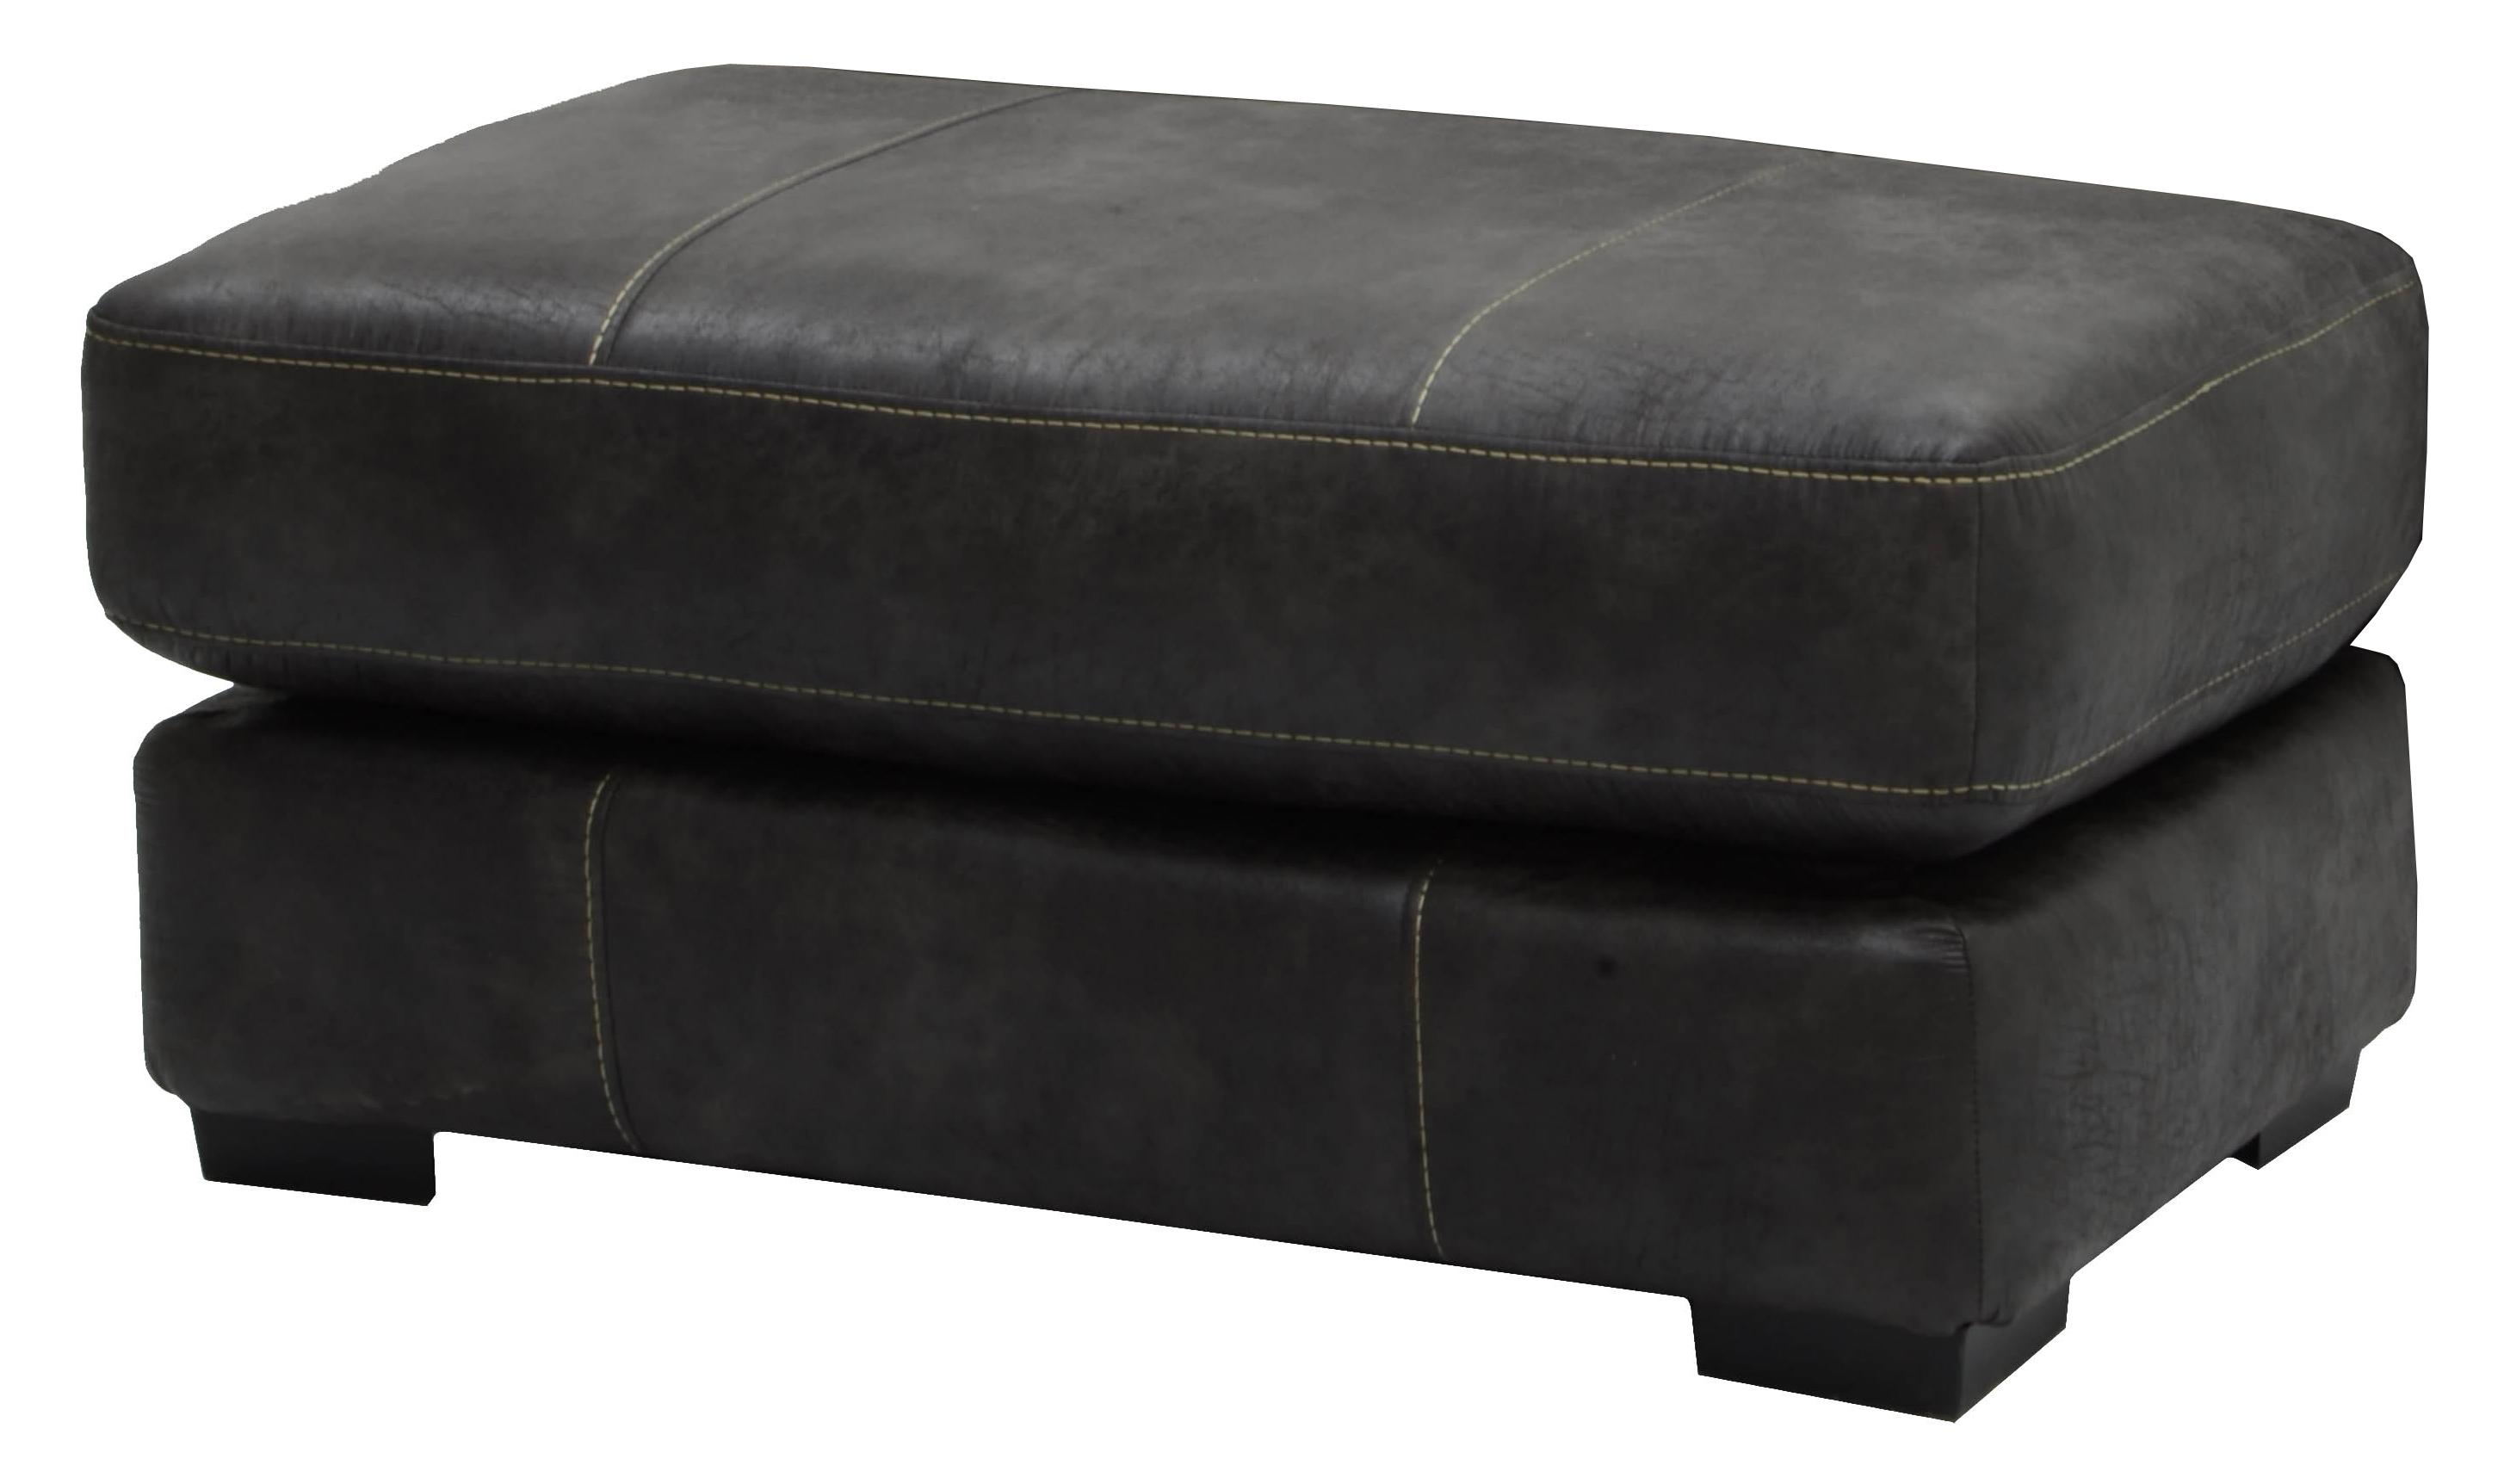 Jackson Furniture Grant Ottoman - Item Number: 4453-10 1227-28-3027-28